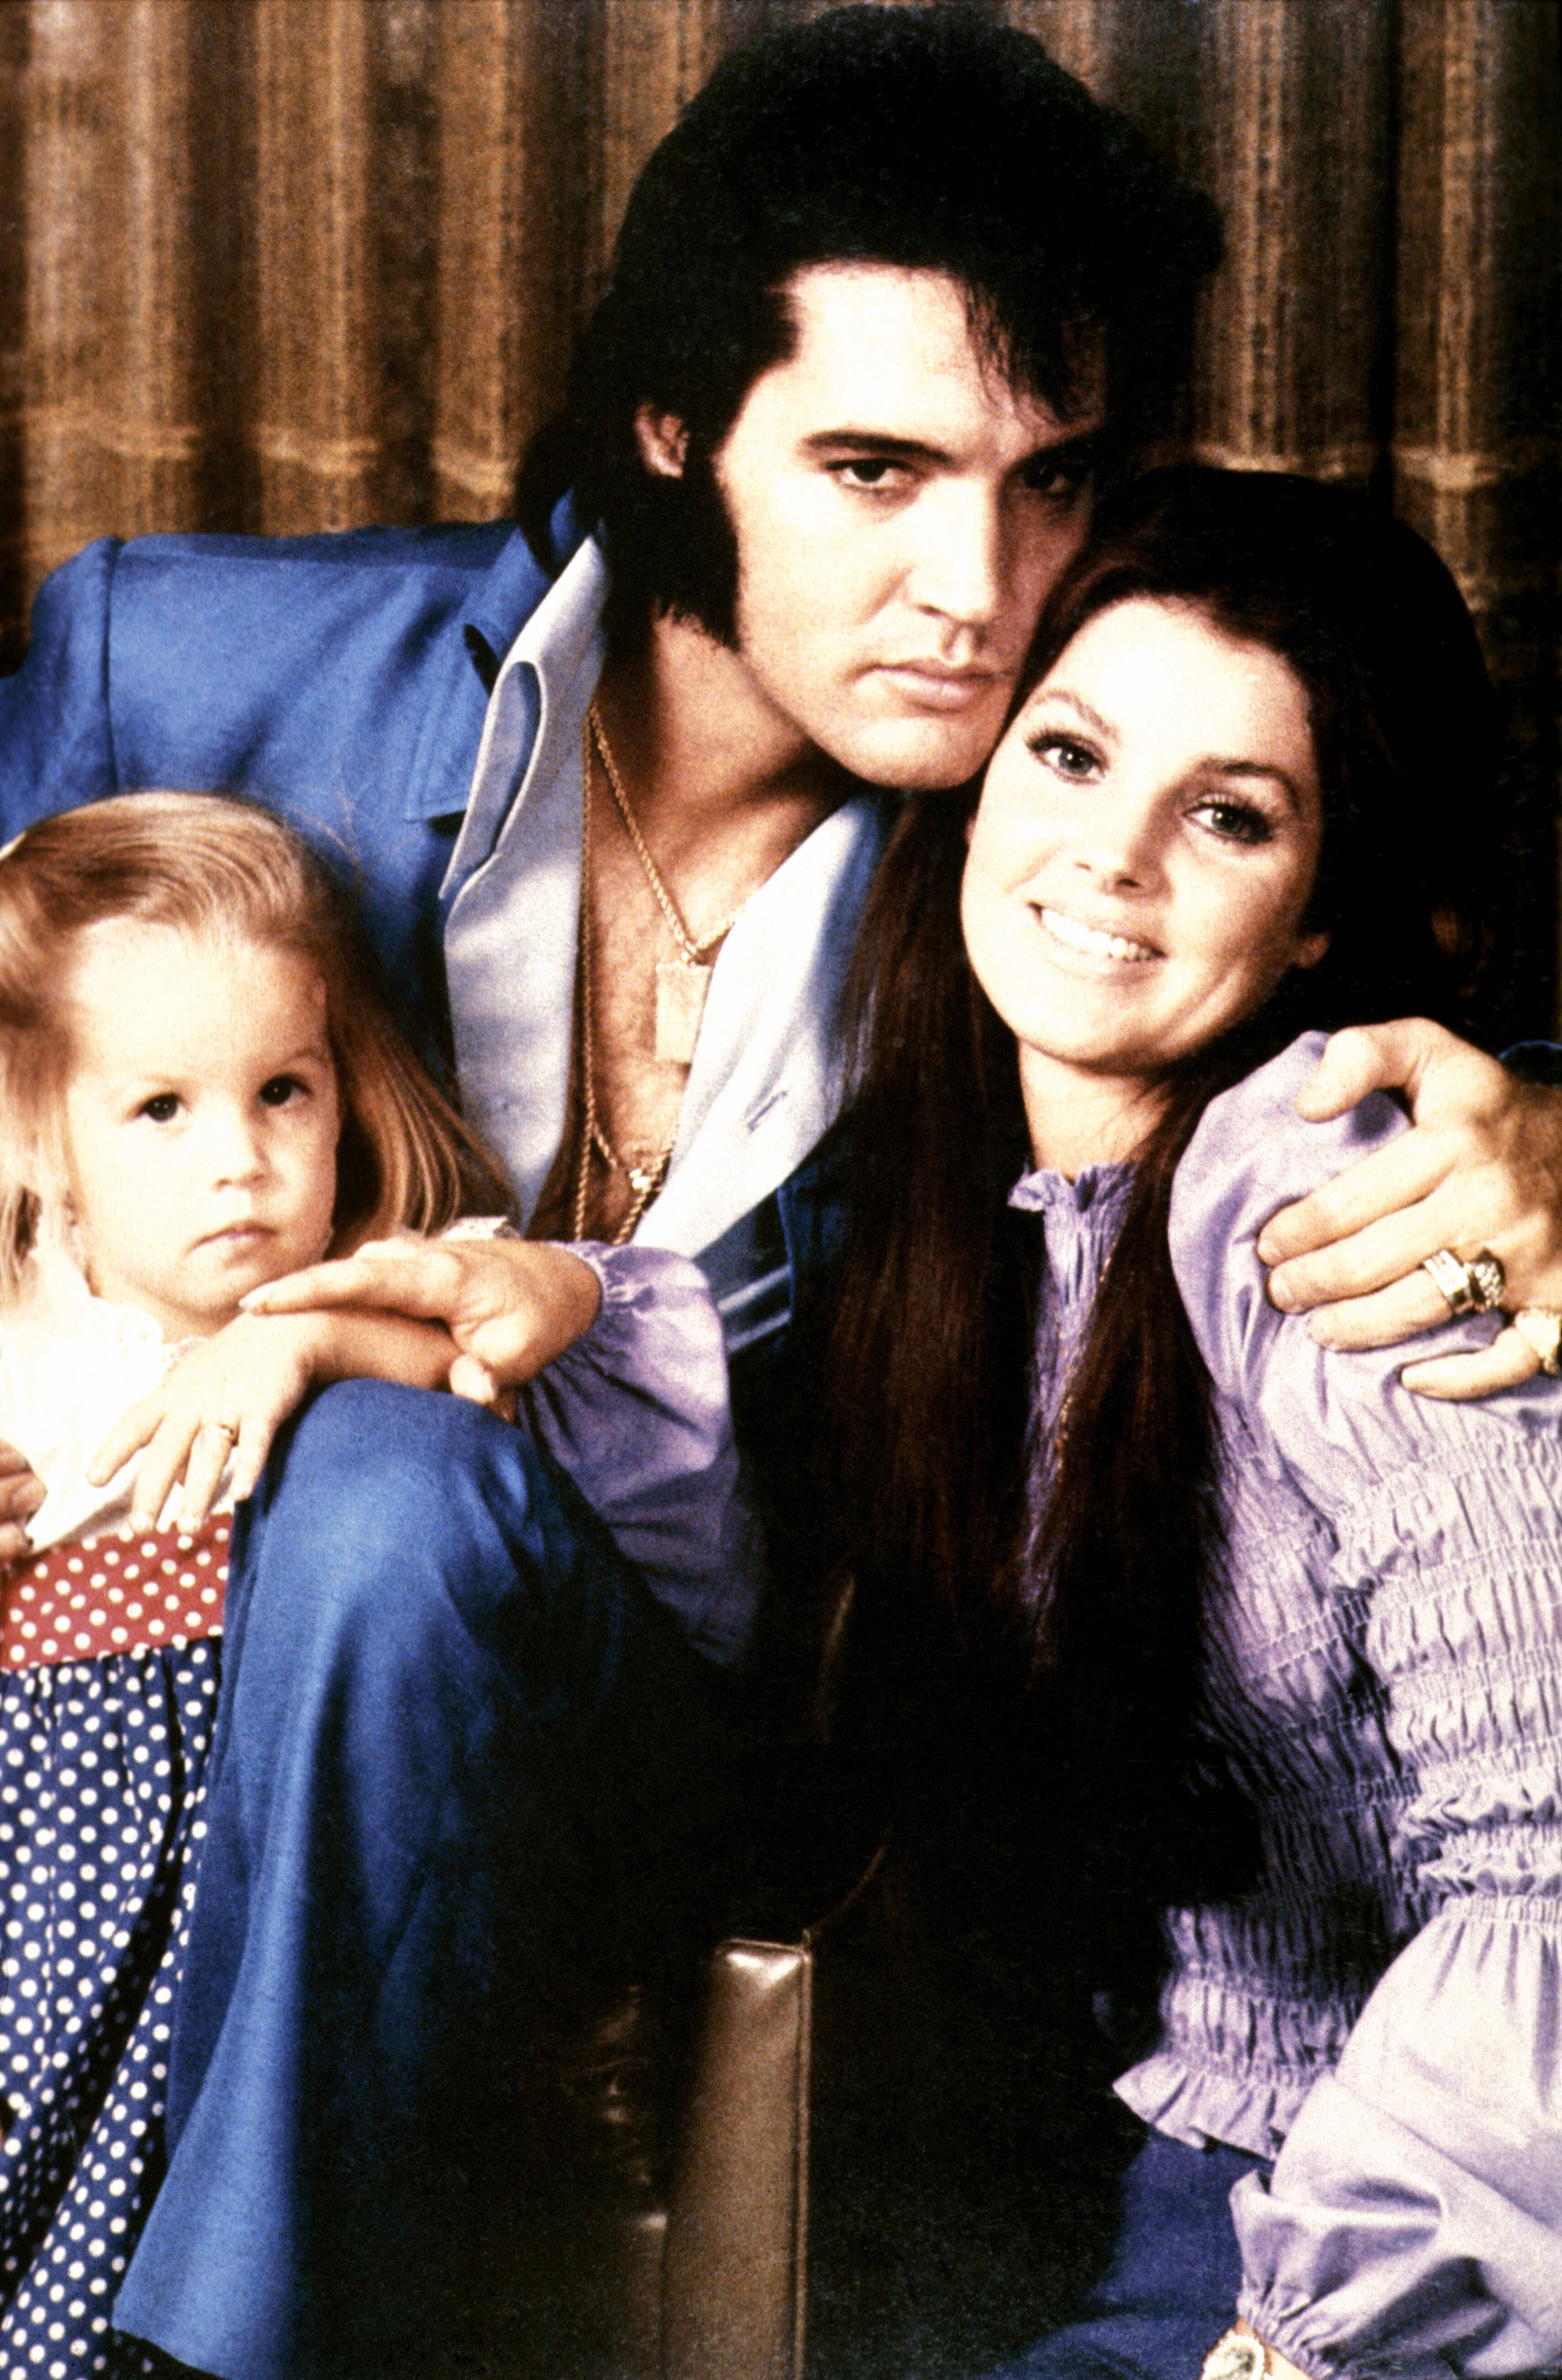 Elvis Presley, with his wife Priscilla and daughter Lisa-Marie circa 1970 | Source: Getty Images